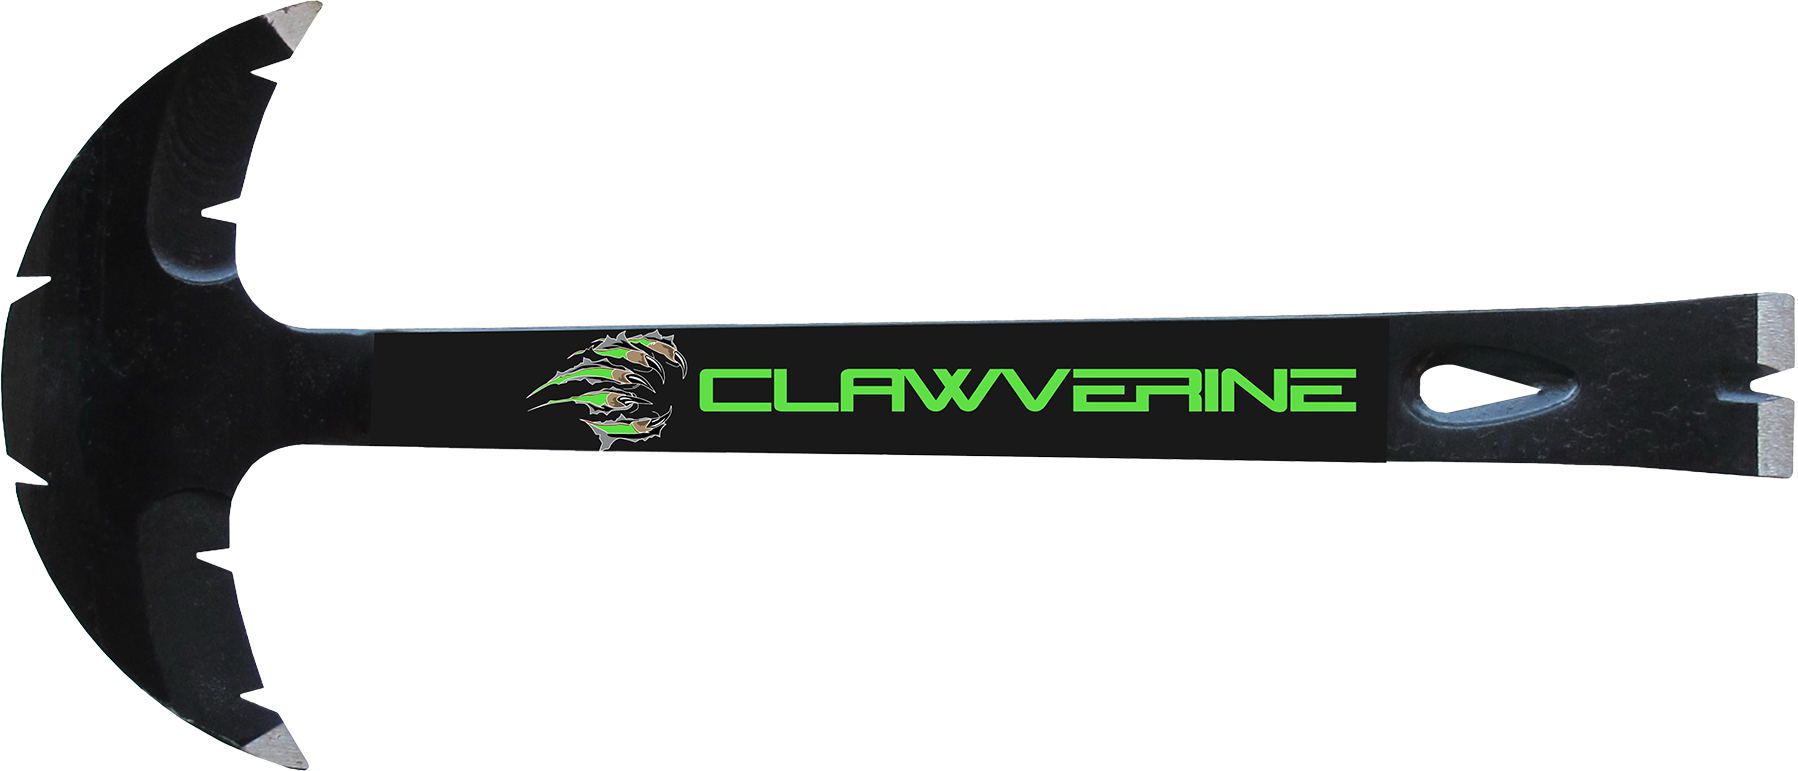 Primegrip Clawverine Step Flashing Cleaning Bar - 09-276